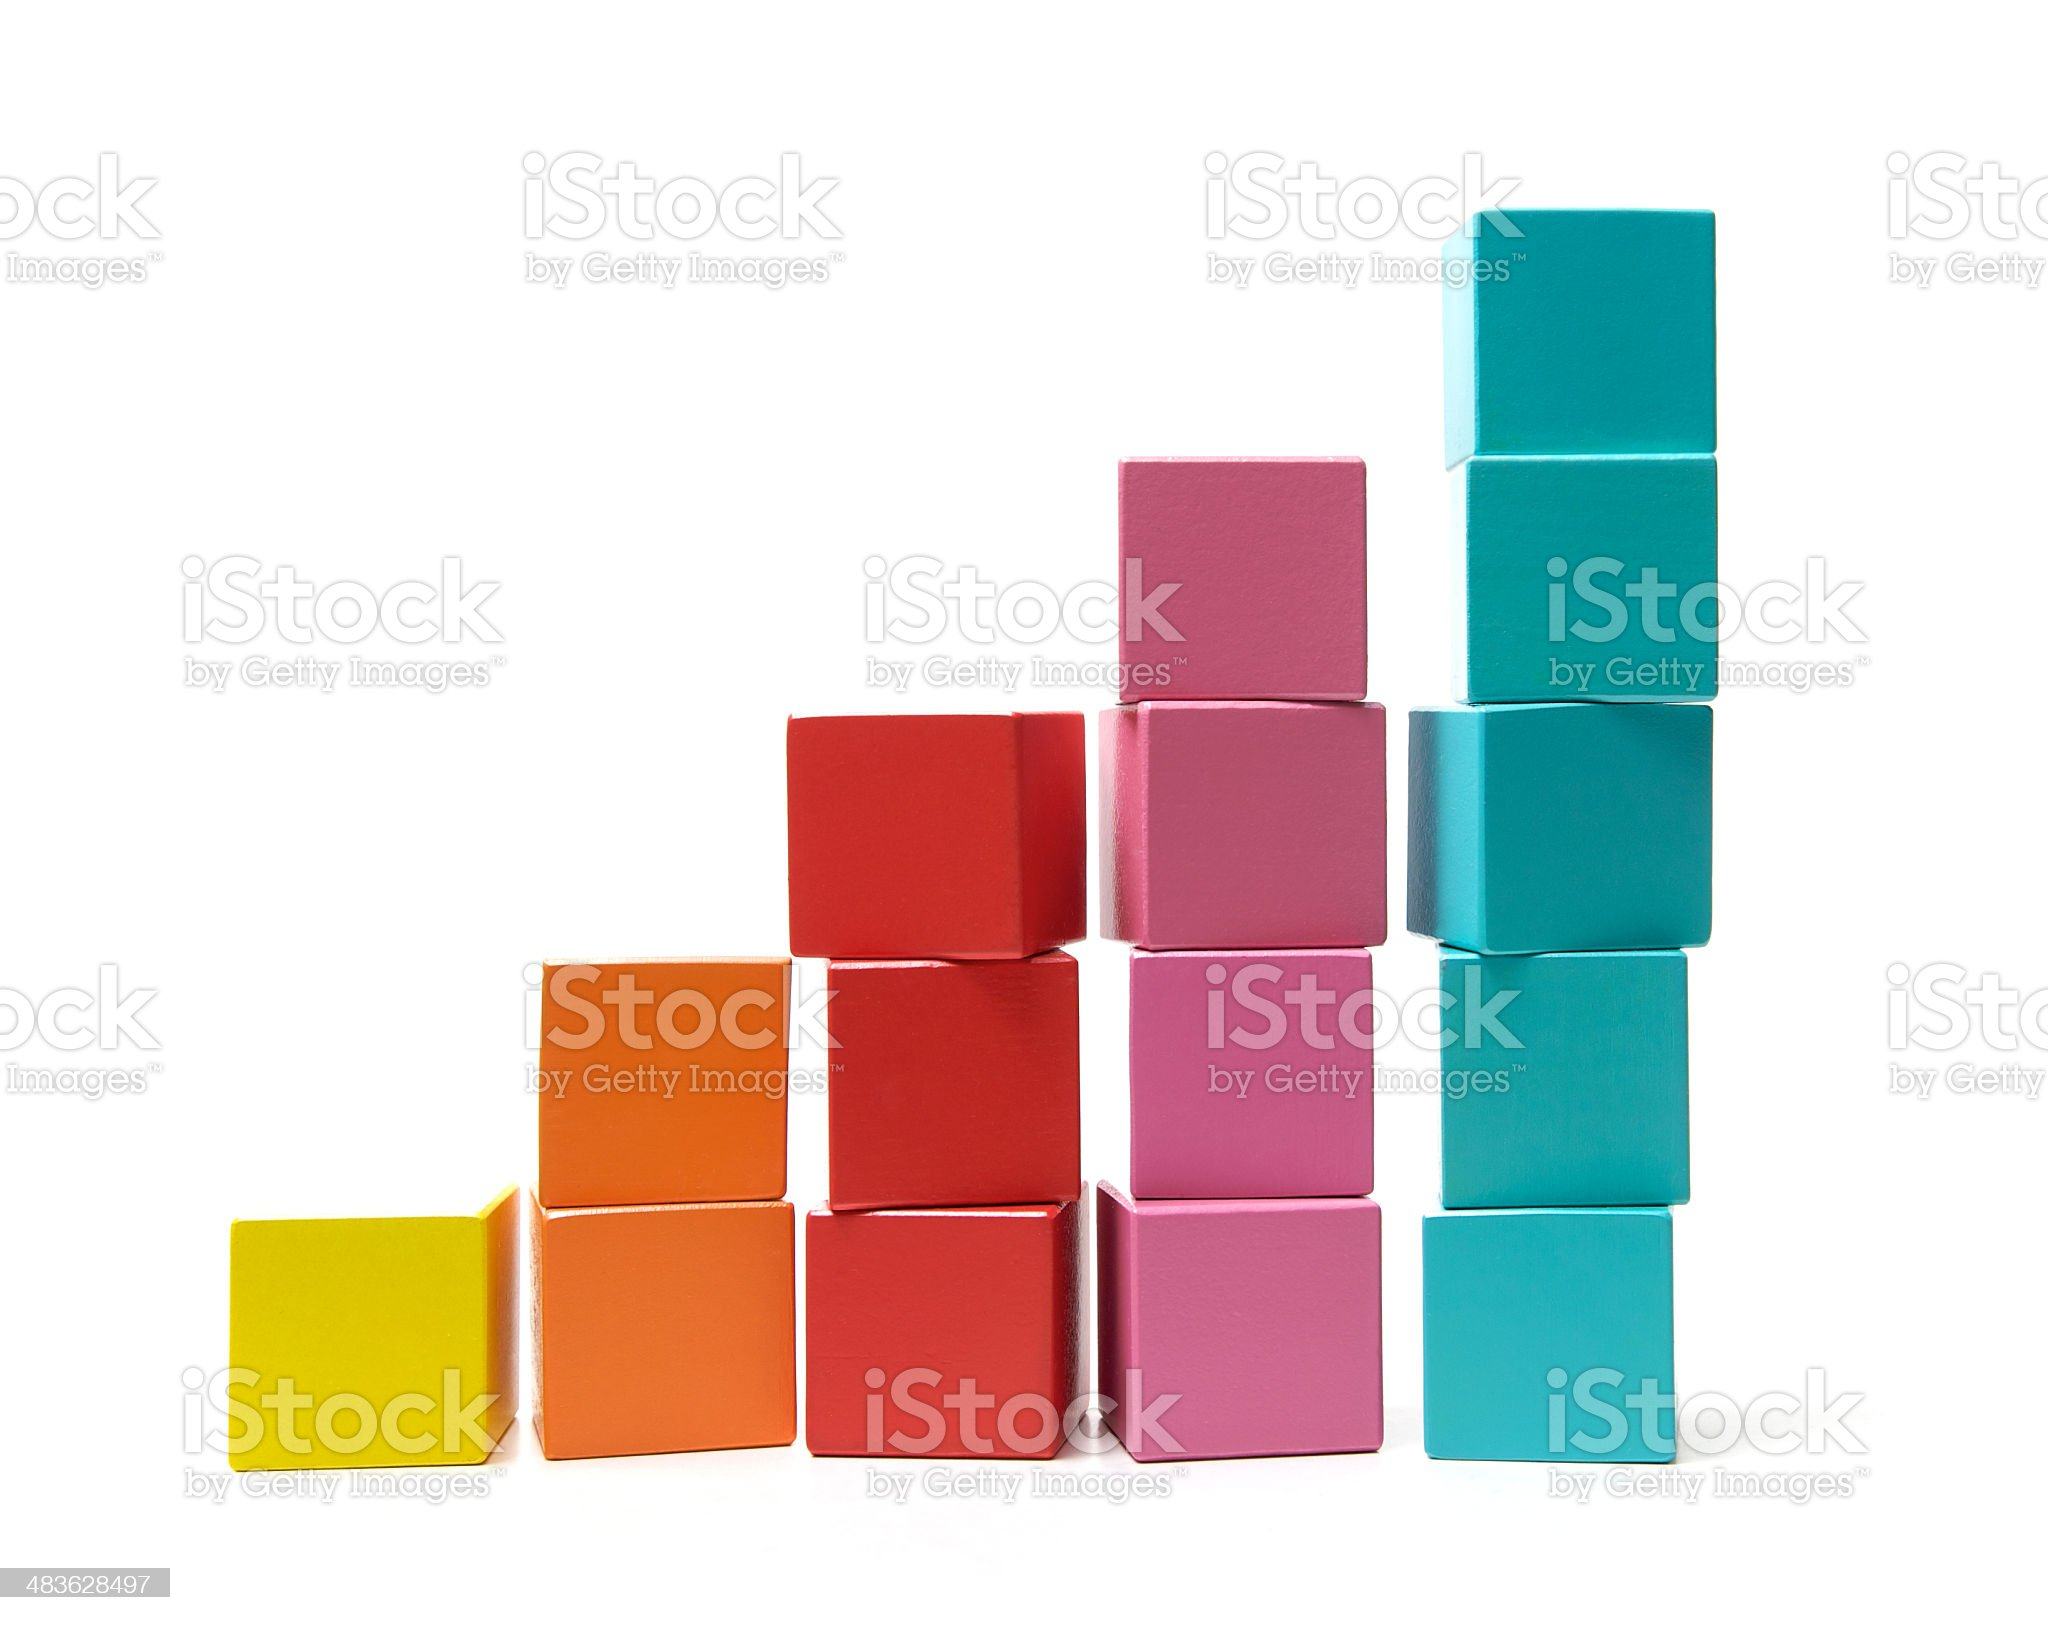 Growth and achievement royalty-free stock photo